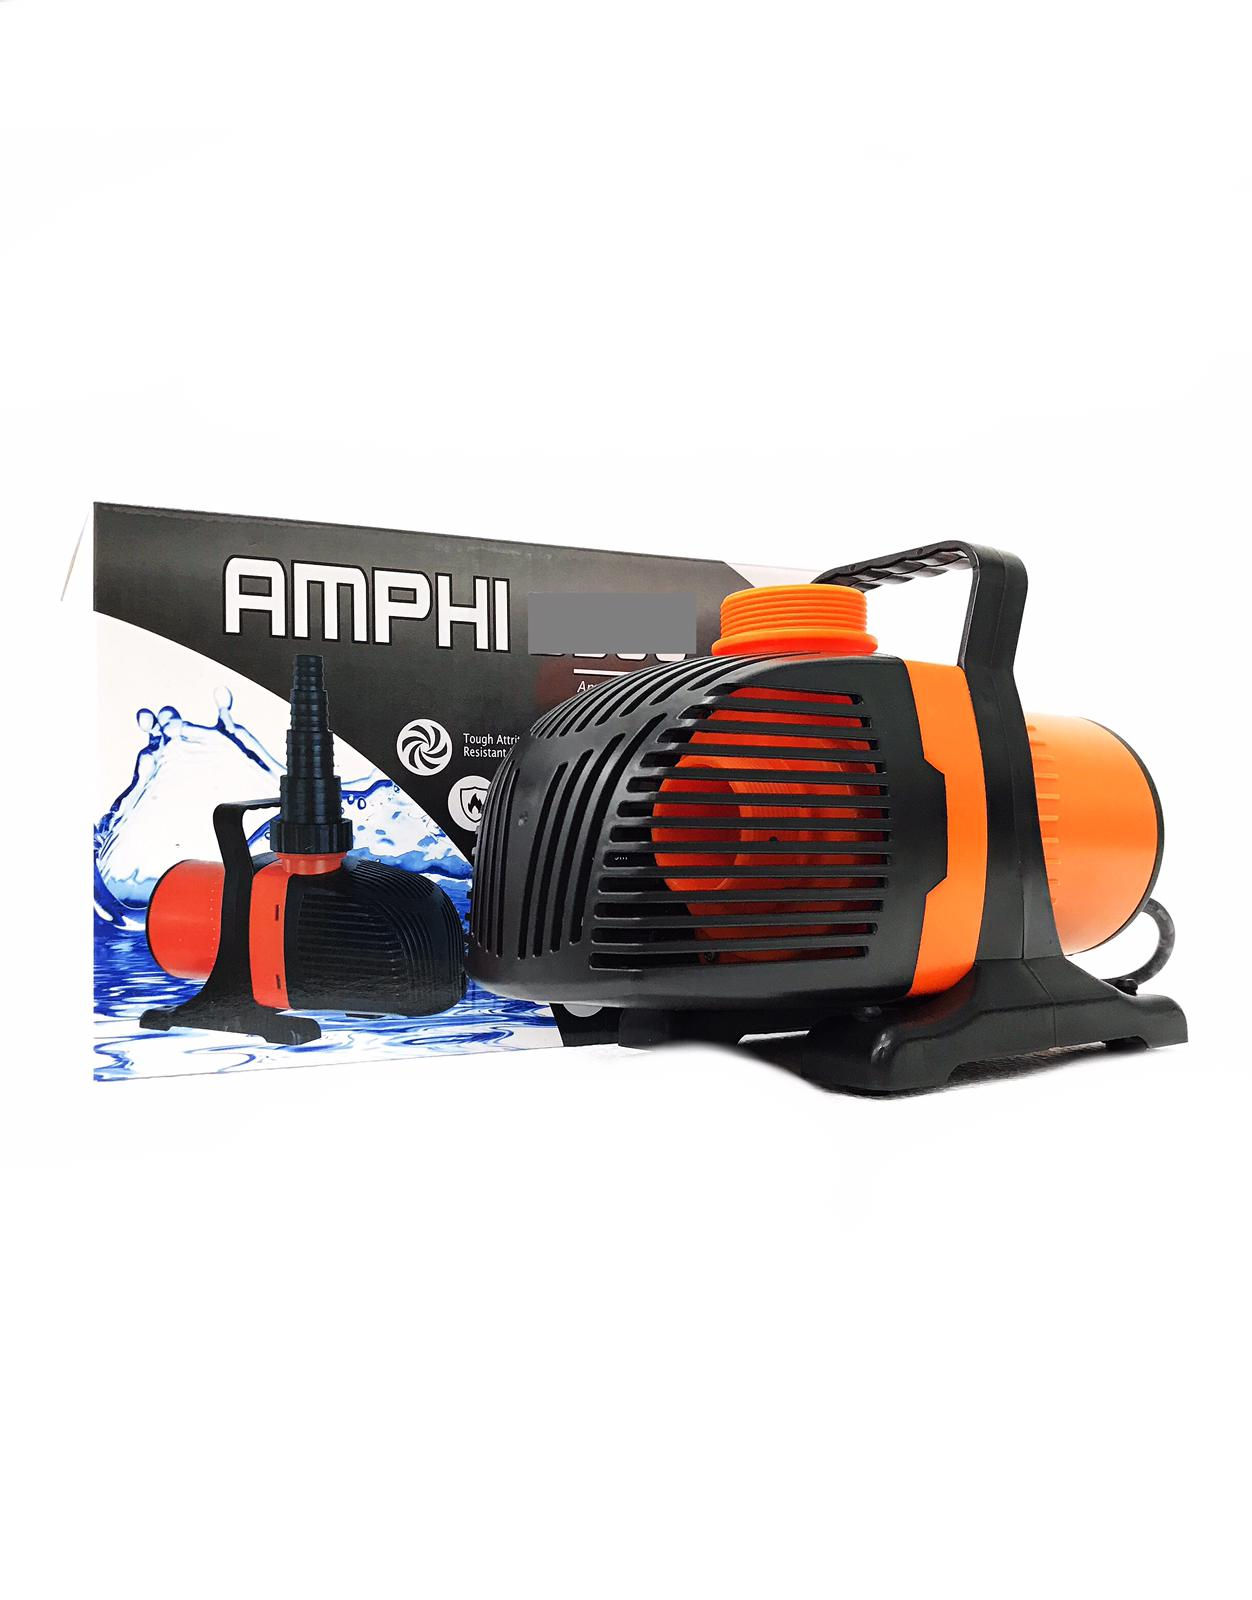 Aqua Zonic Amphi Pump Wet or Dry Mount